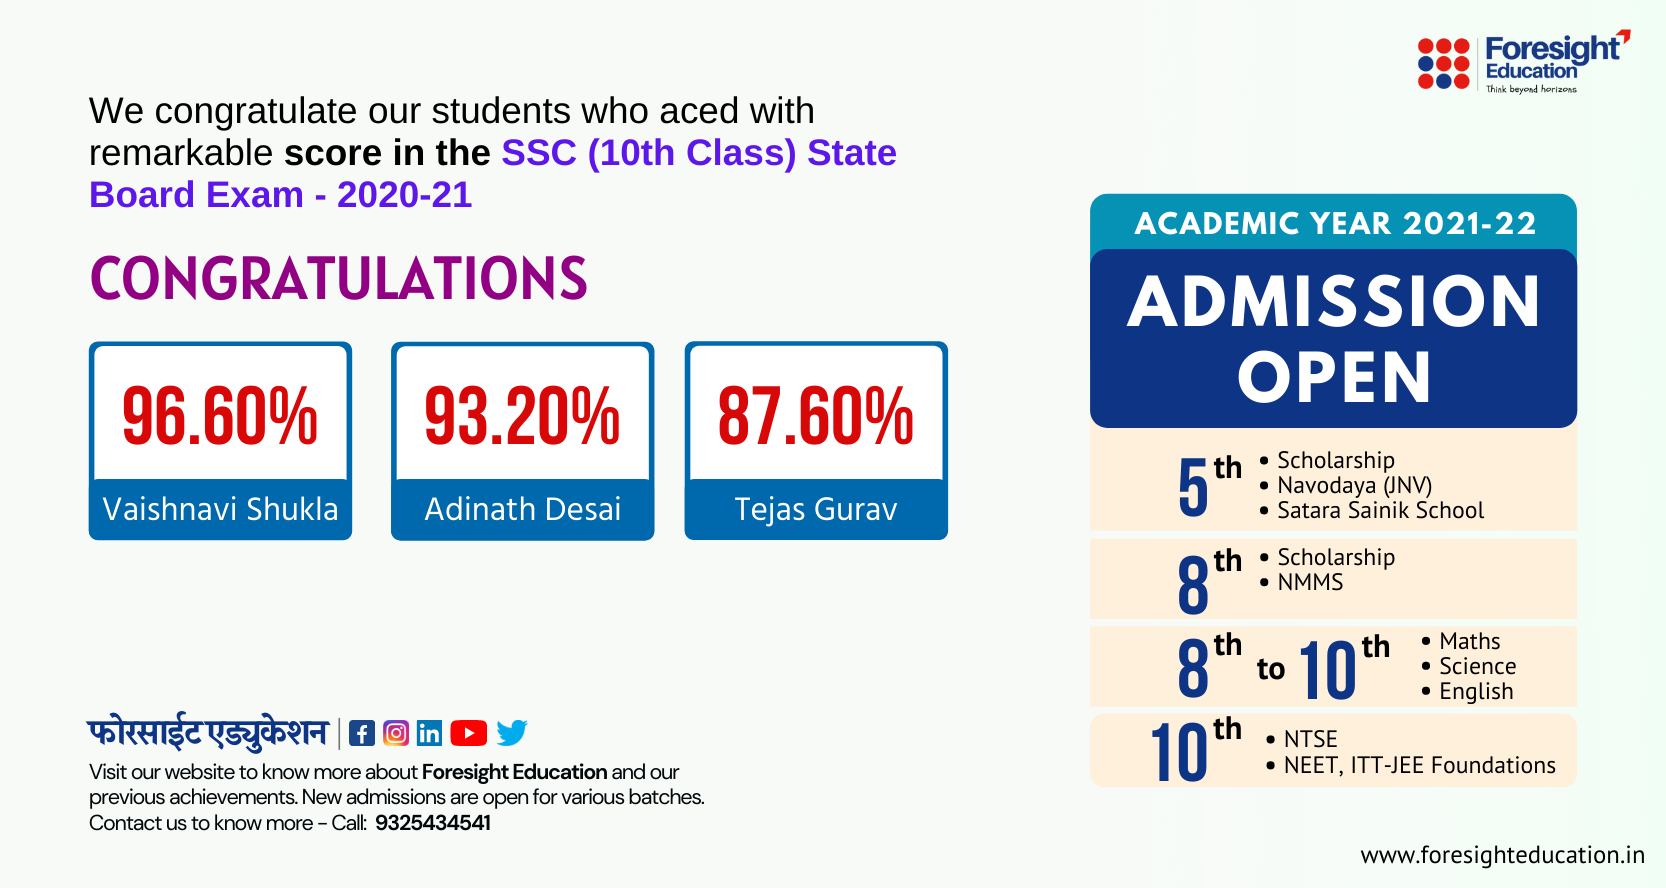 SSC Results - 2020-21 - Foresight Education